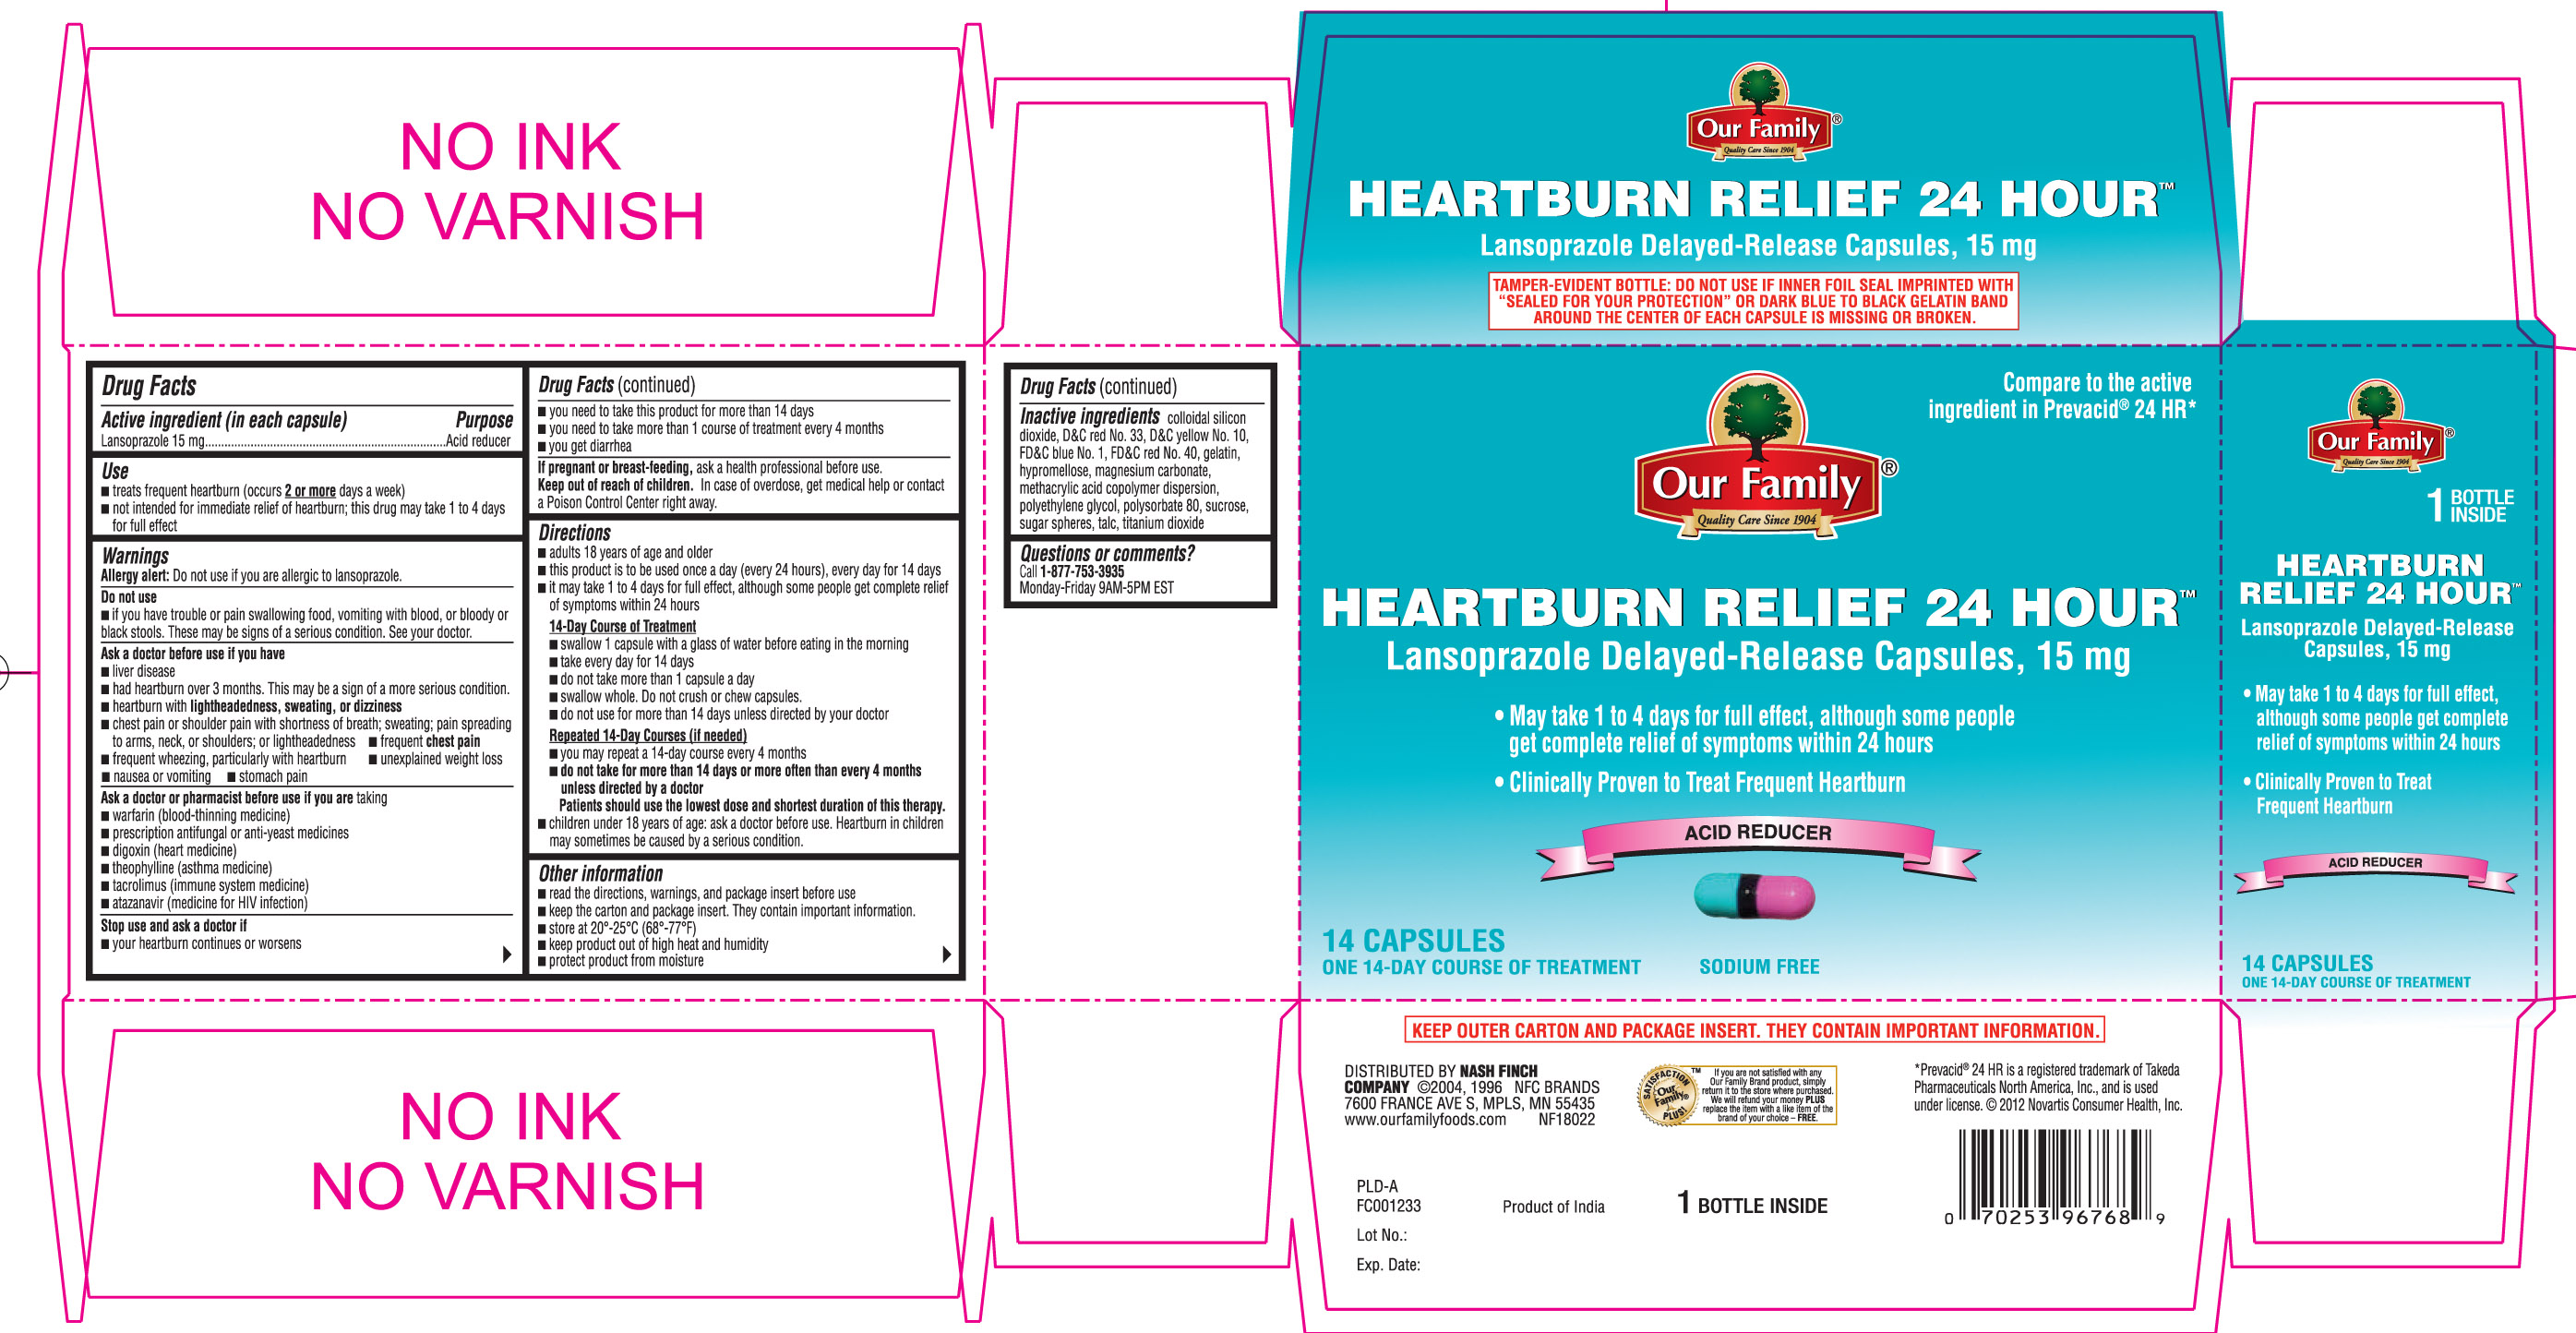 Heartburn Relief 24 Hour (Lansoprazole) Capsule, Delayed Release [Our Family (Nash Finch Company)]